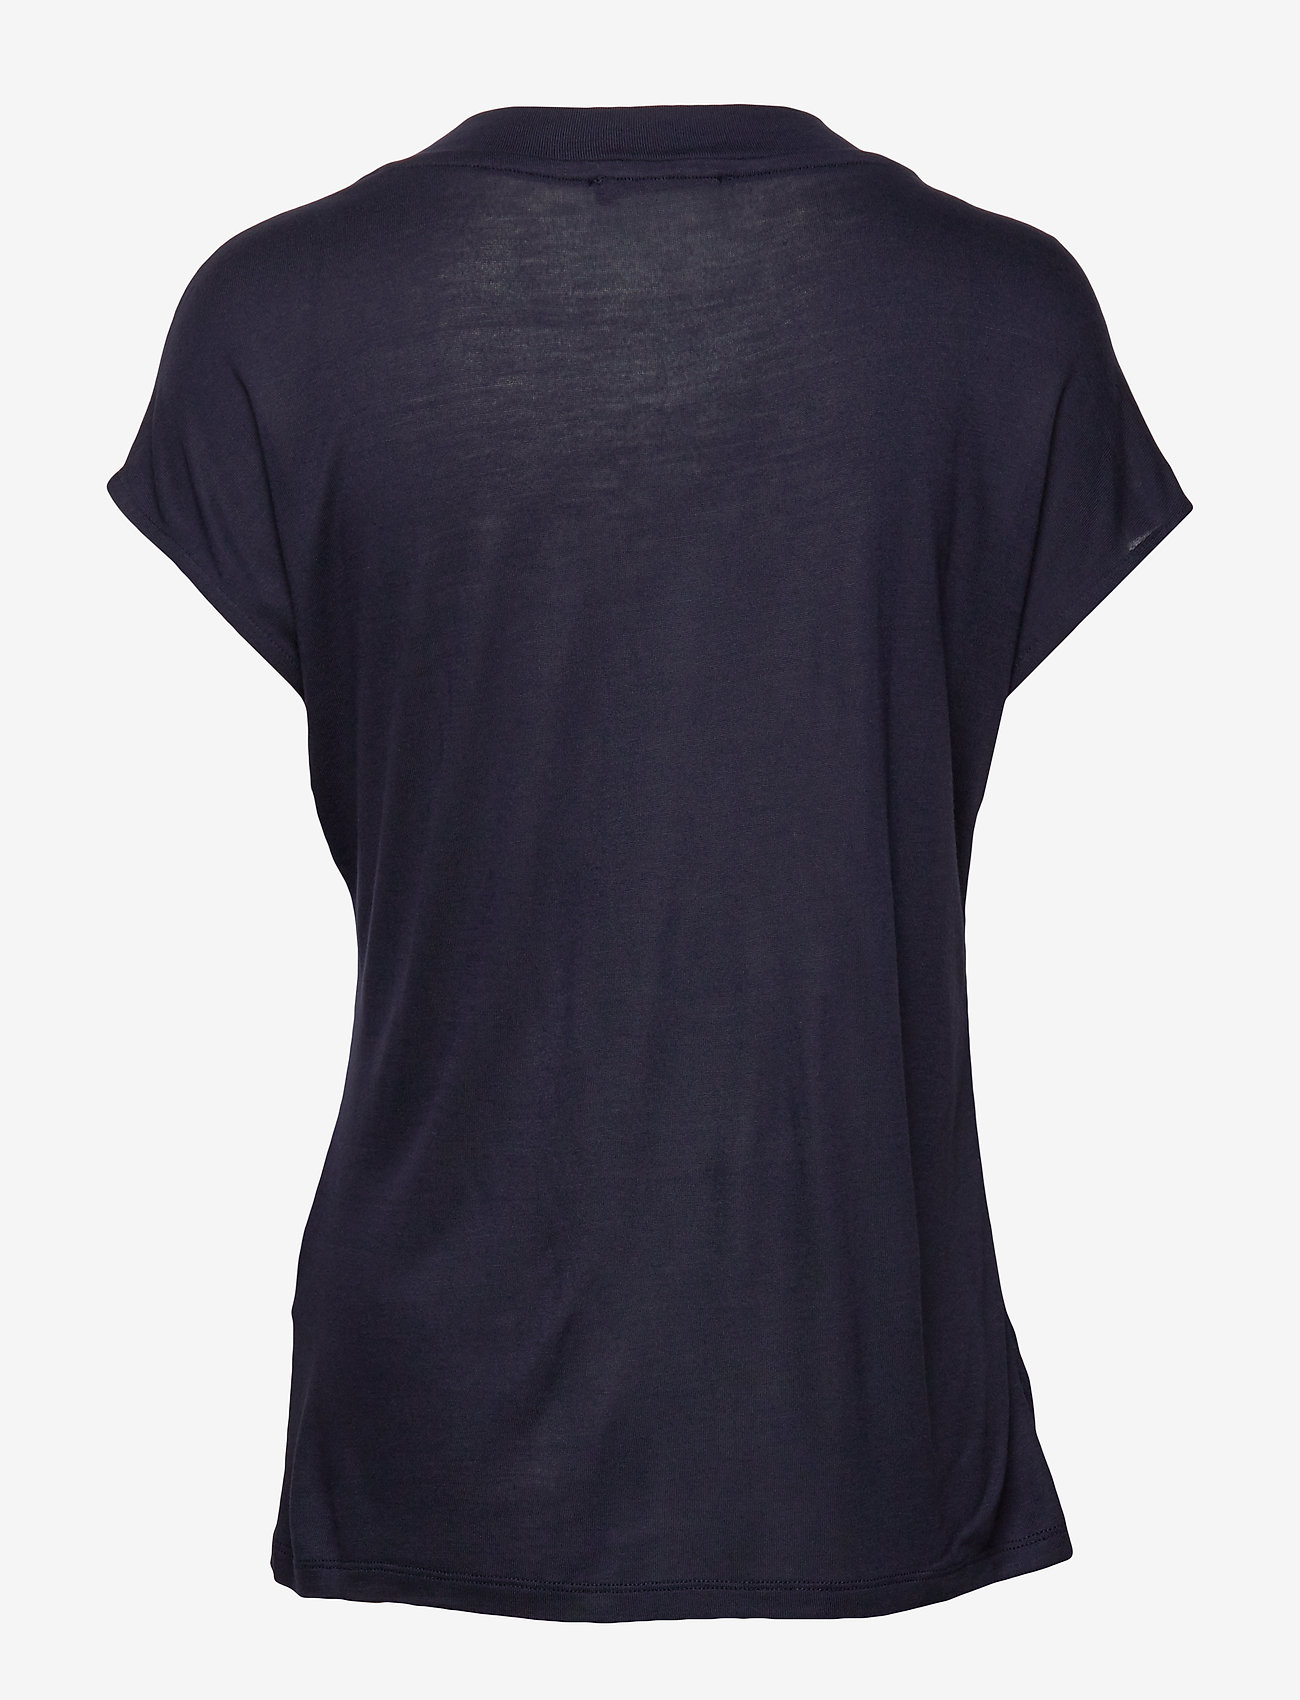 Esprit Collection - T-Shirts - t-shirts - navy - 1